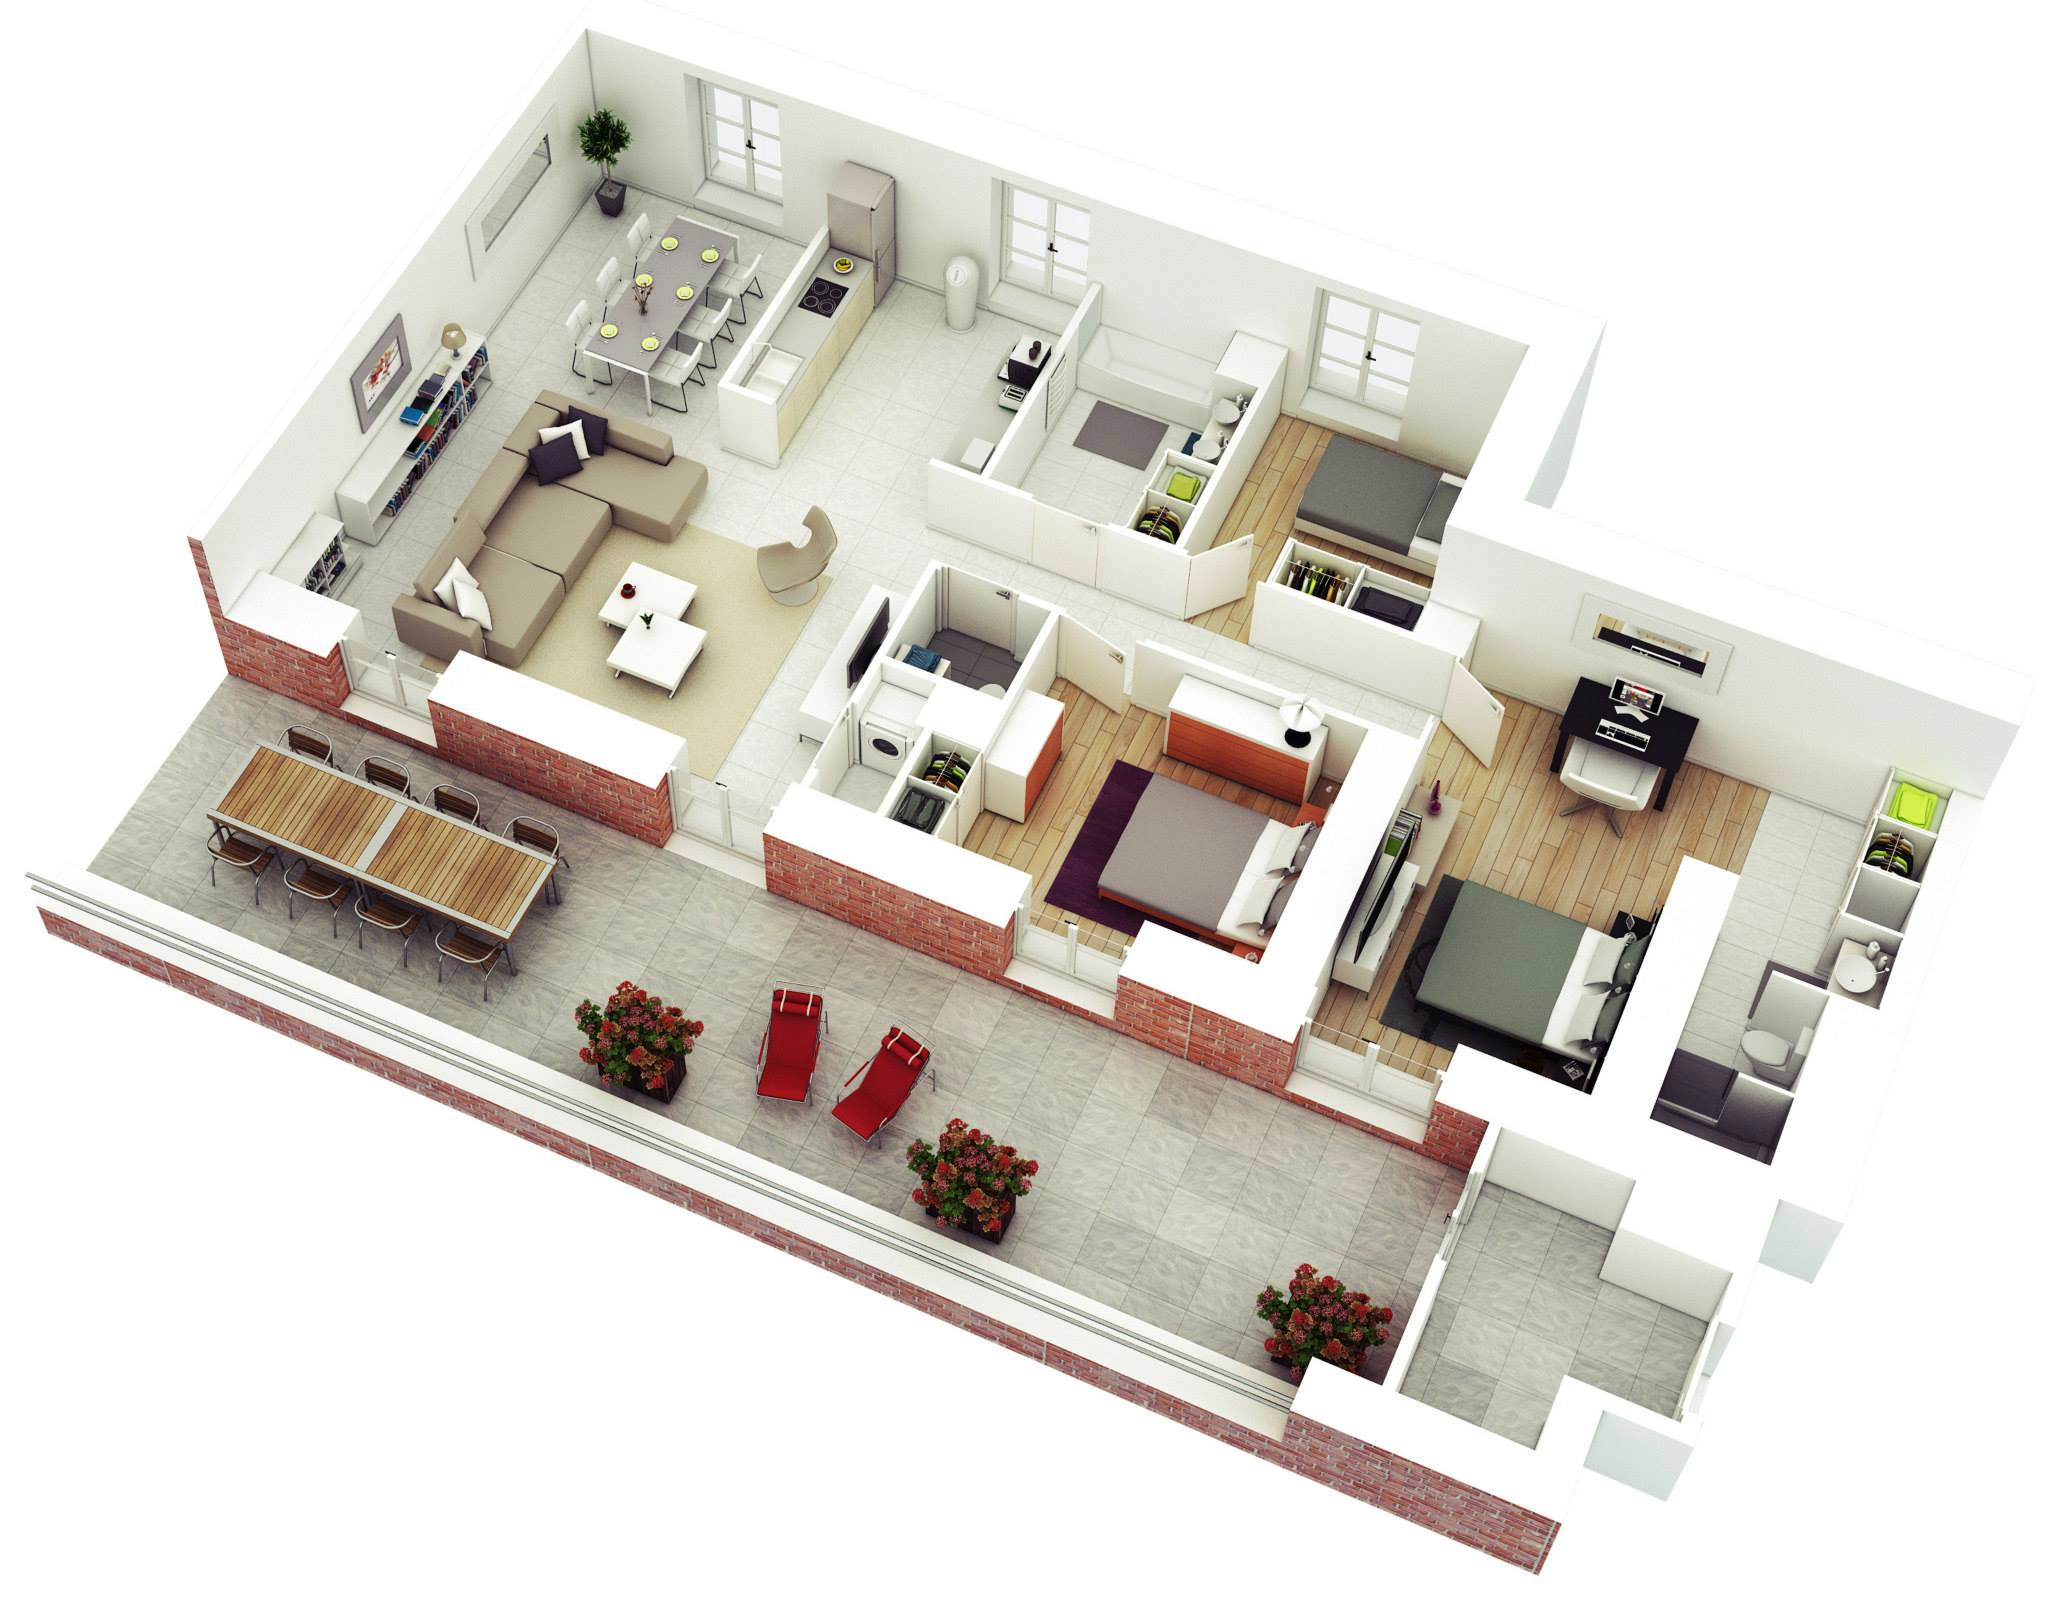 25 more 3 bedroom 3d floor plans - 3d Plan Drawing